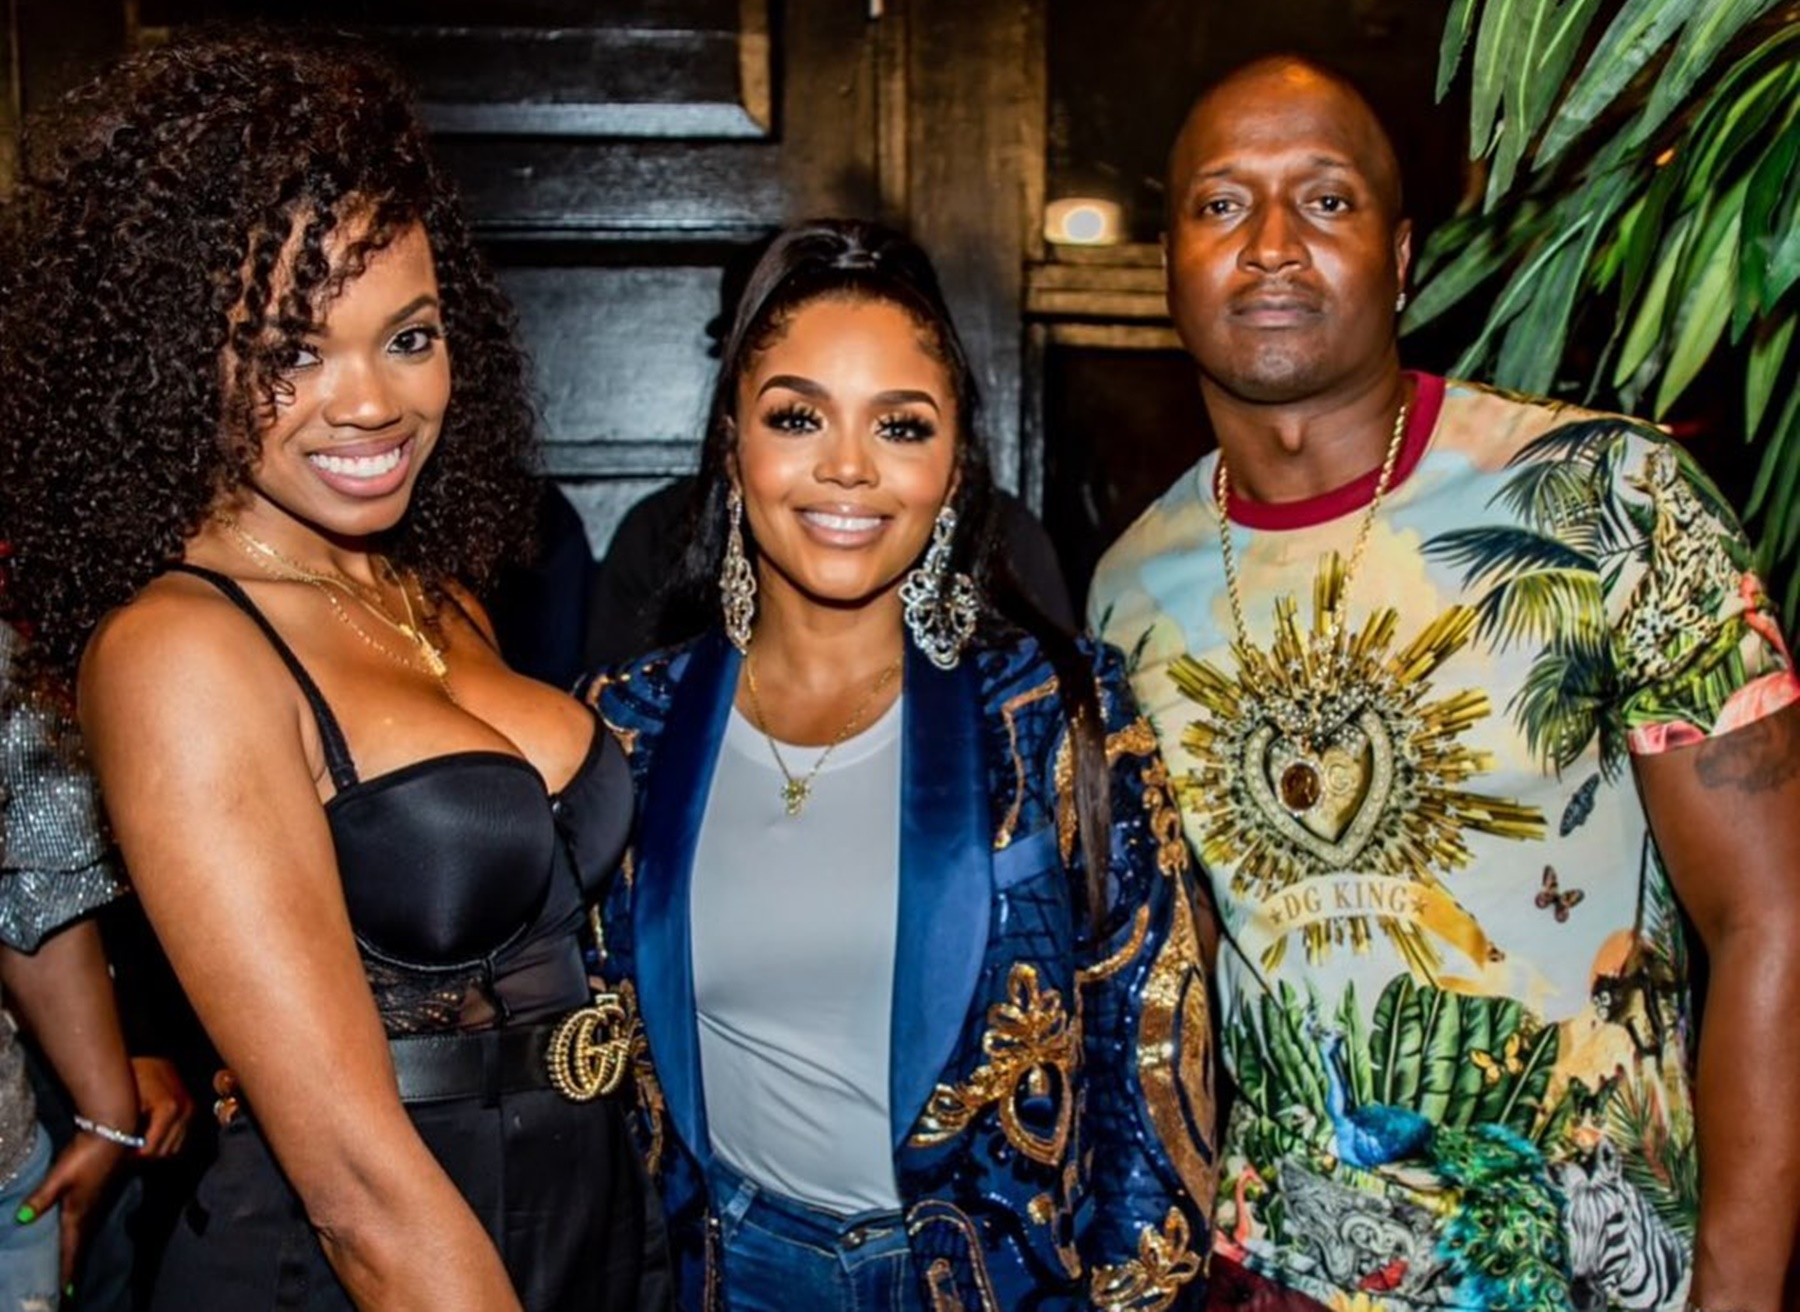 rasheeda-frost-and-husband-kirk-are-the-picture-of-love-at-the-grand-opening-of-her-bistro-but-her-mother-shirleen-harvell-stole-the-show-with-her-killer-curves